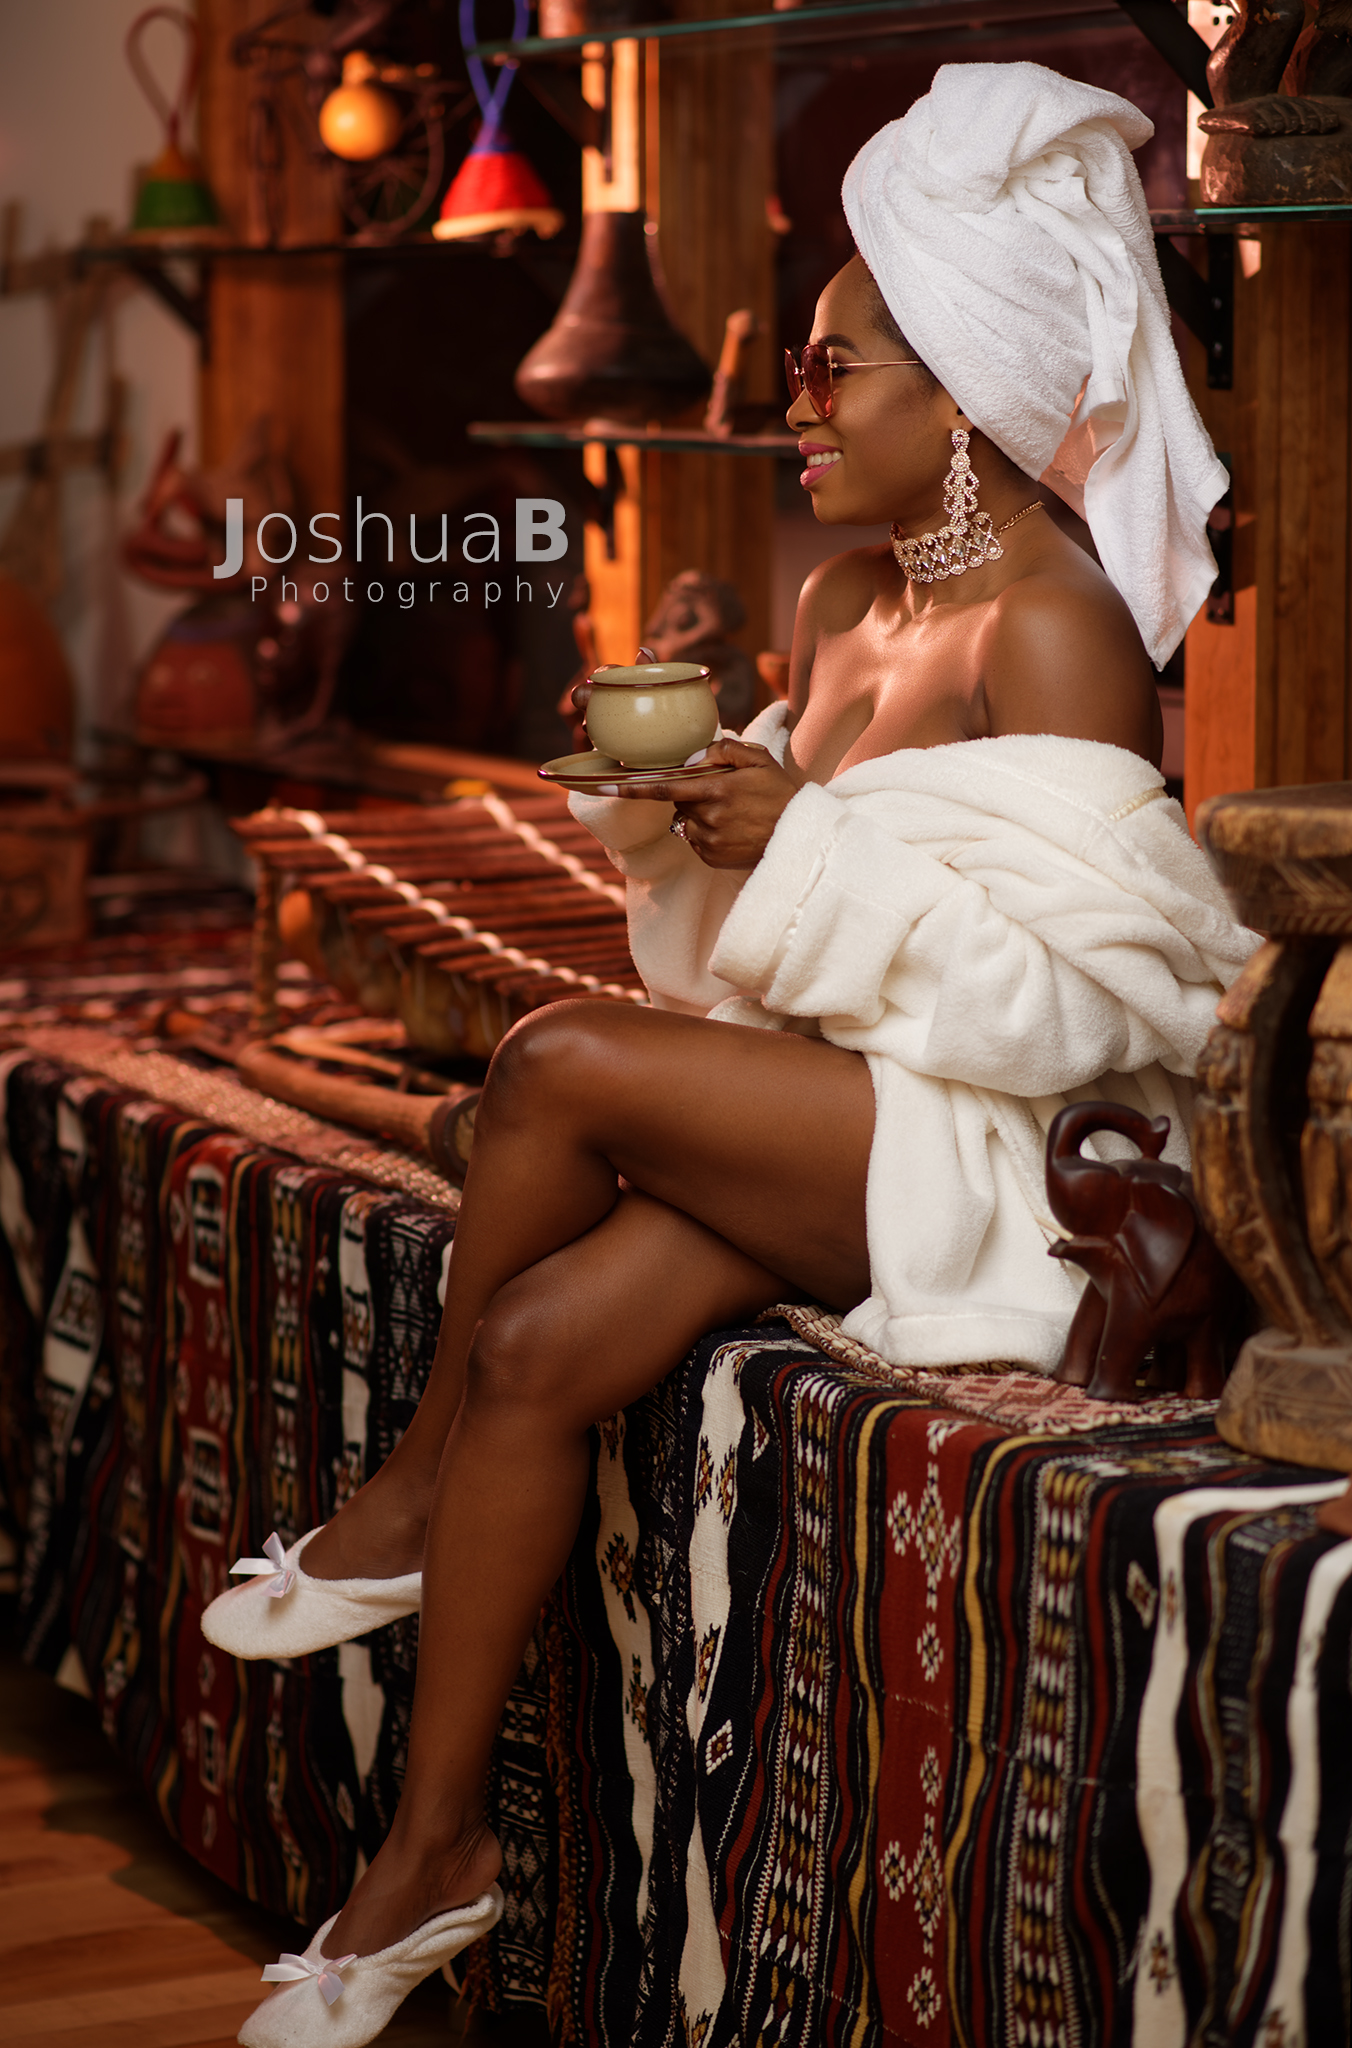 Abidemi Oke fashion blogger in white bath towels